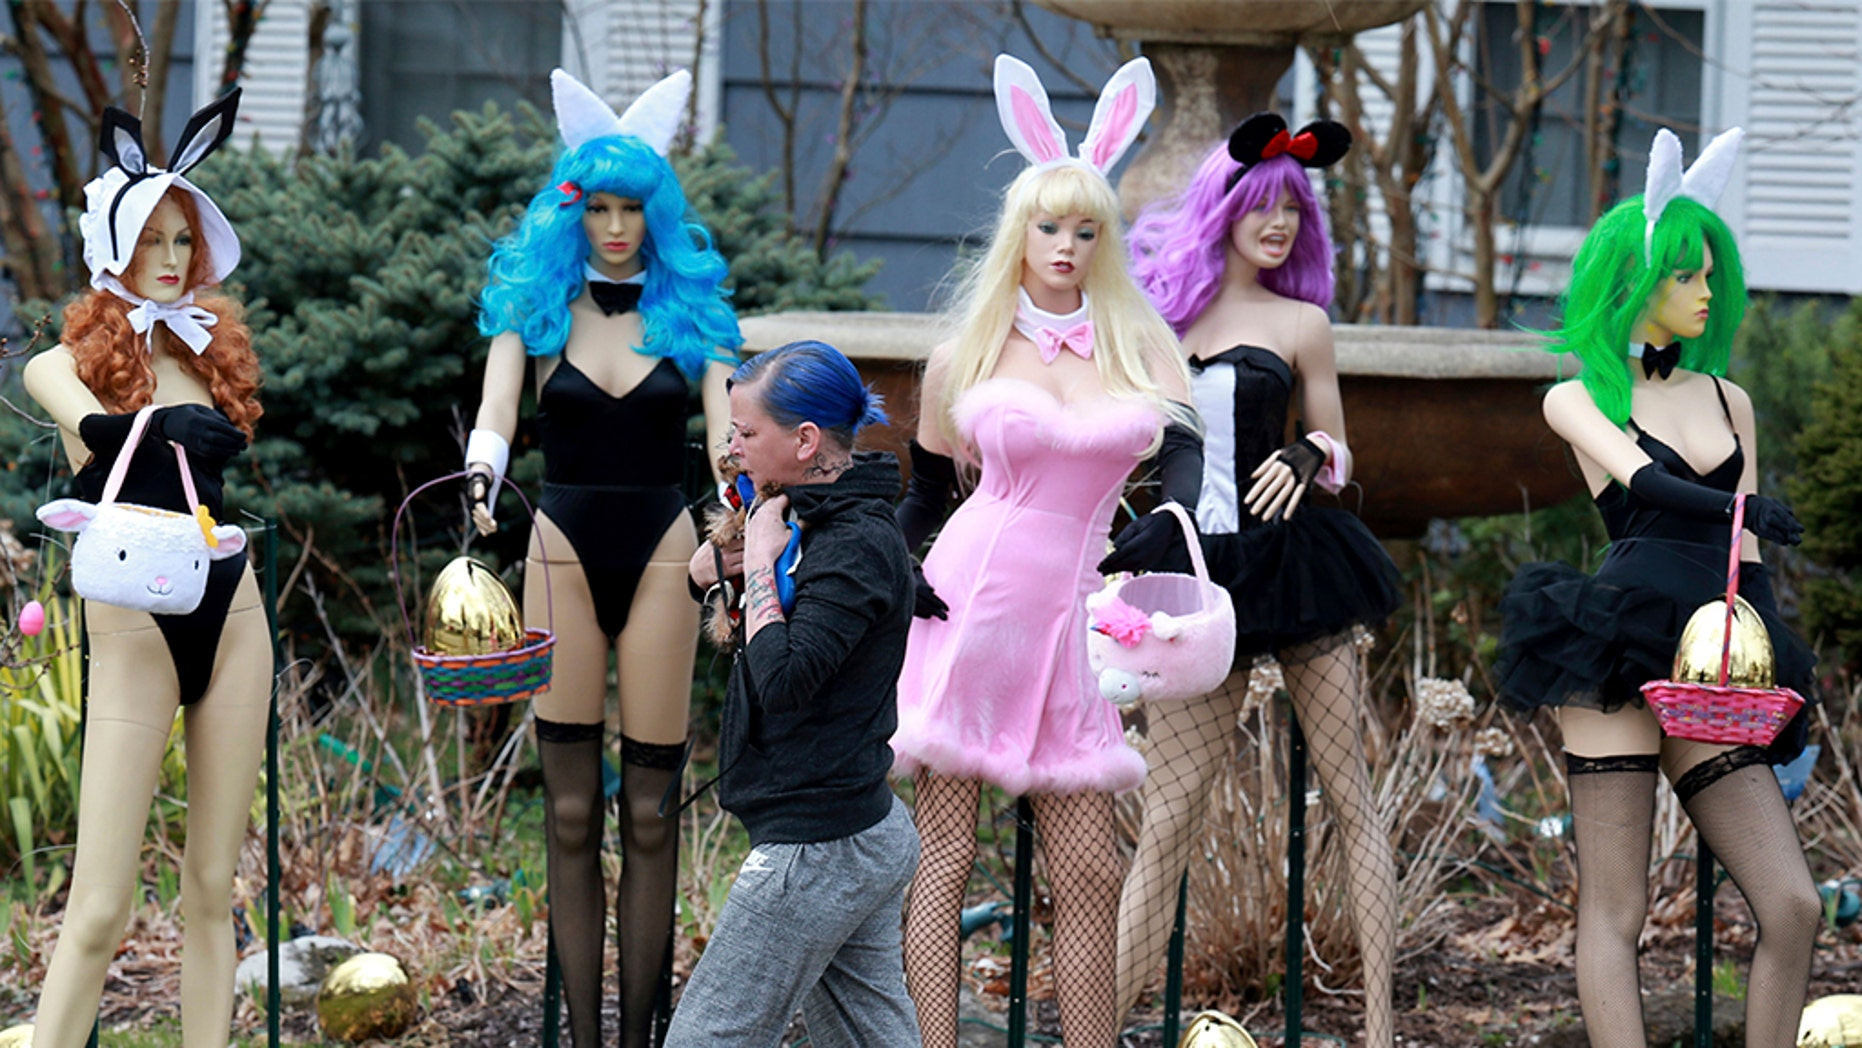 A New Jersey woman unhappy with her neighbor's racy Easter display used some garden shears to damage it. But the display's owner says it will soon be back up. The display has drawn mixed reviews from neighbors, as well as passers-by who stopped to take photos. ( Ed Murray/NJ Advance Media via AP)